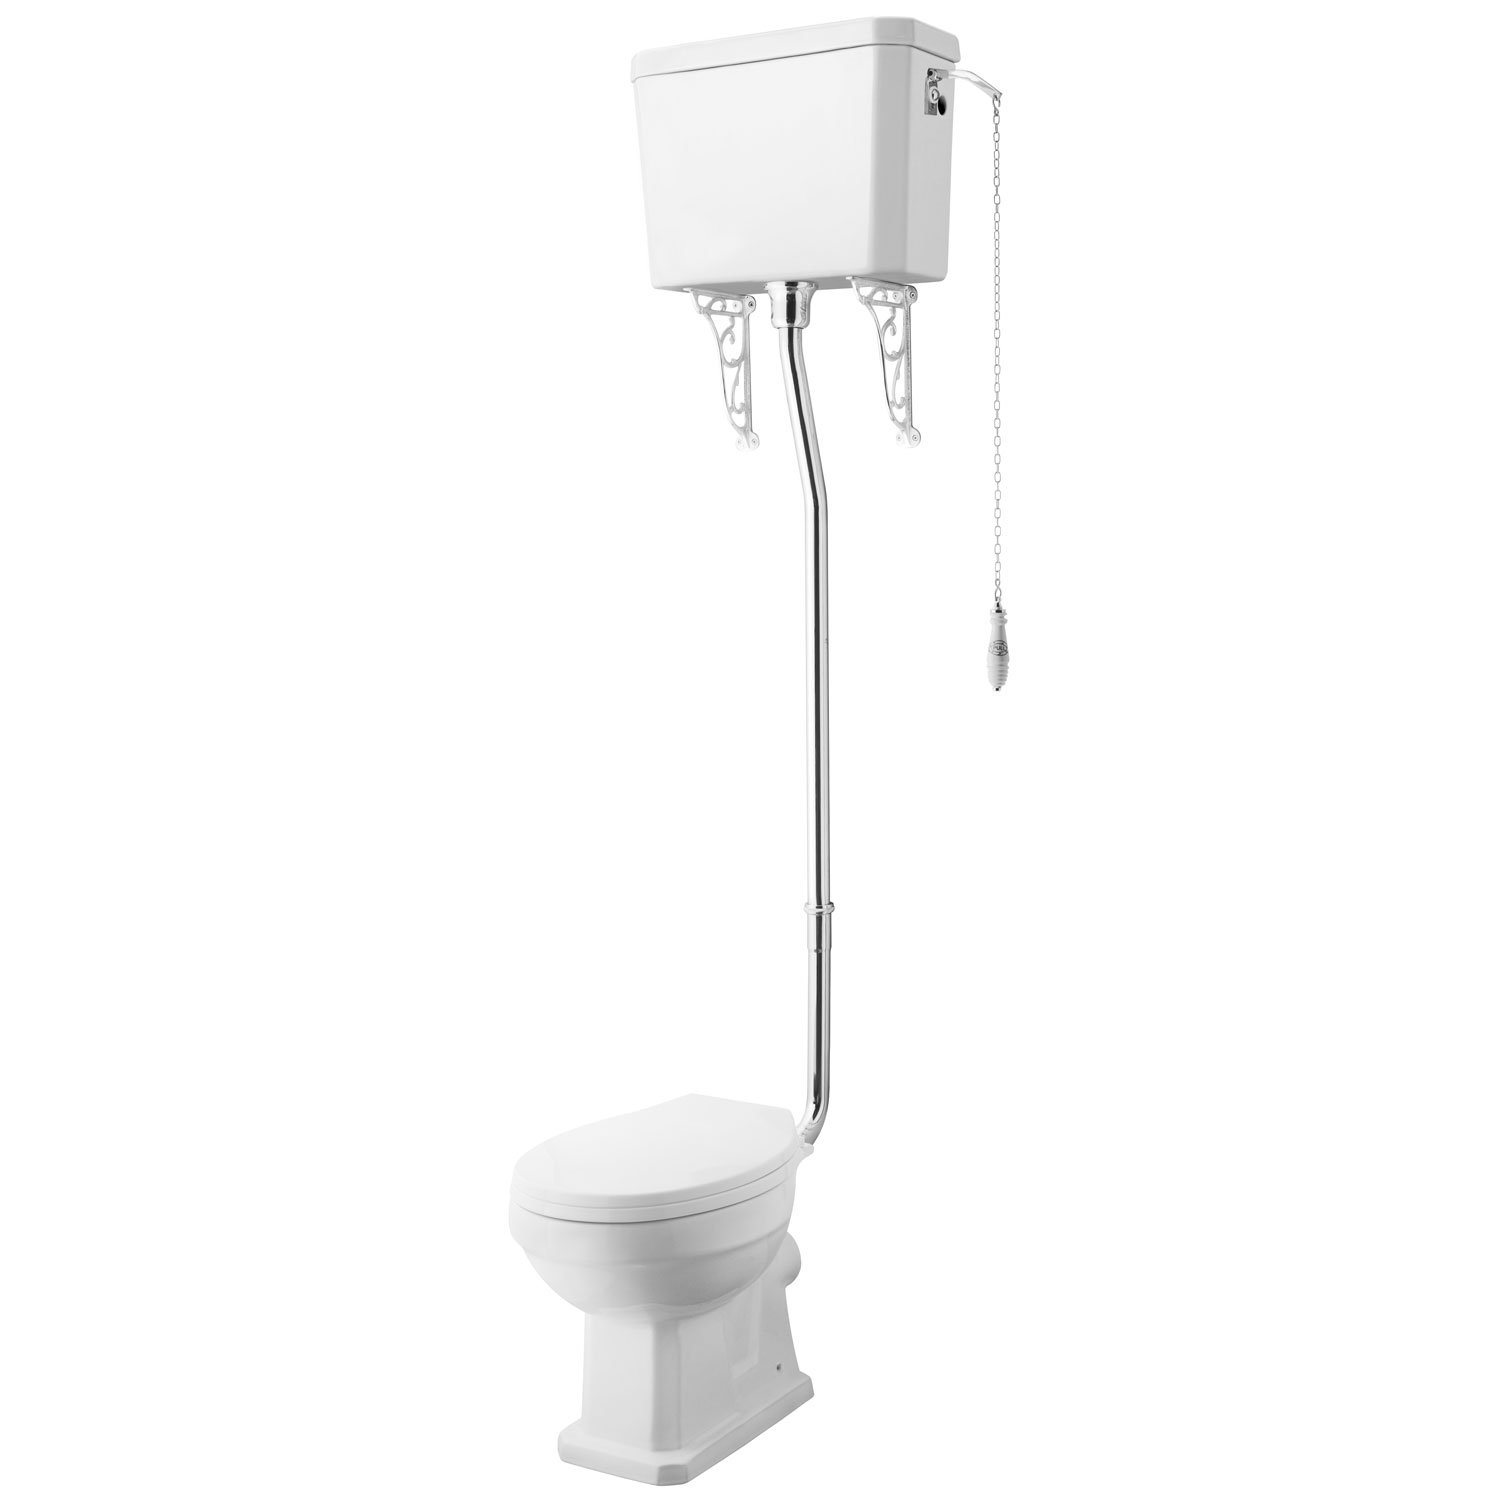 Premier Carlton High Level Toilet with Lever Cistern and Flushpipe - Excluding Seat